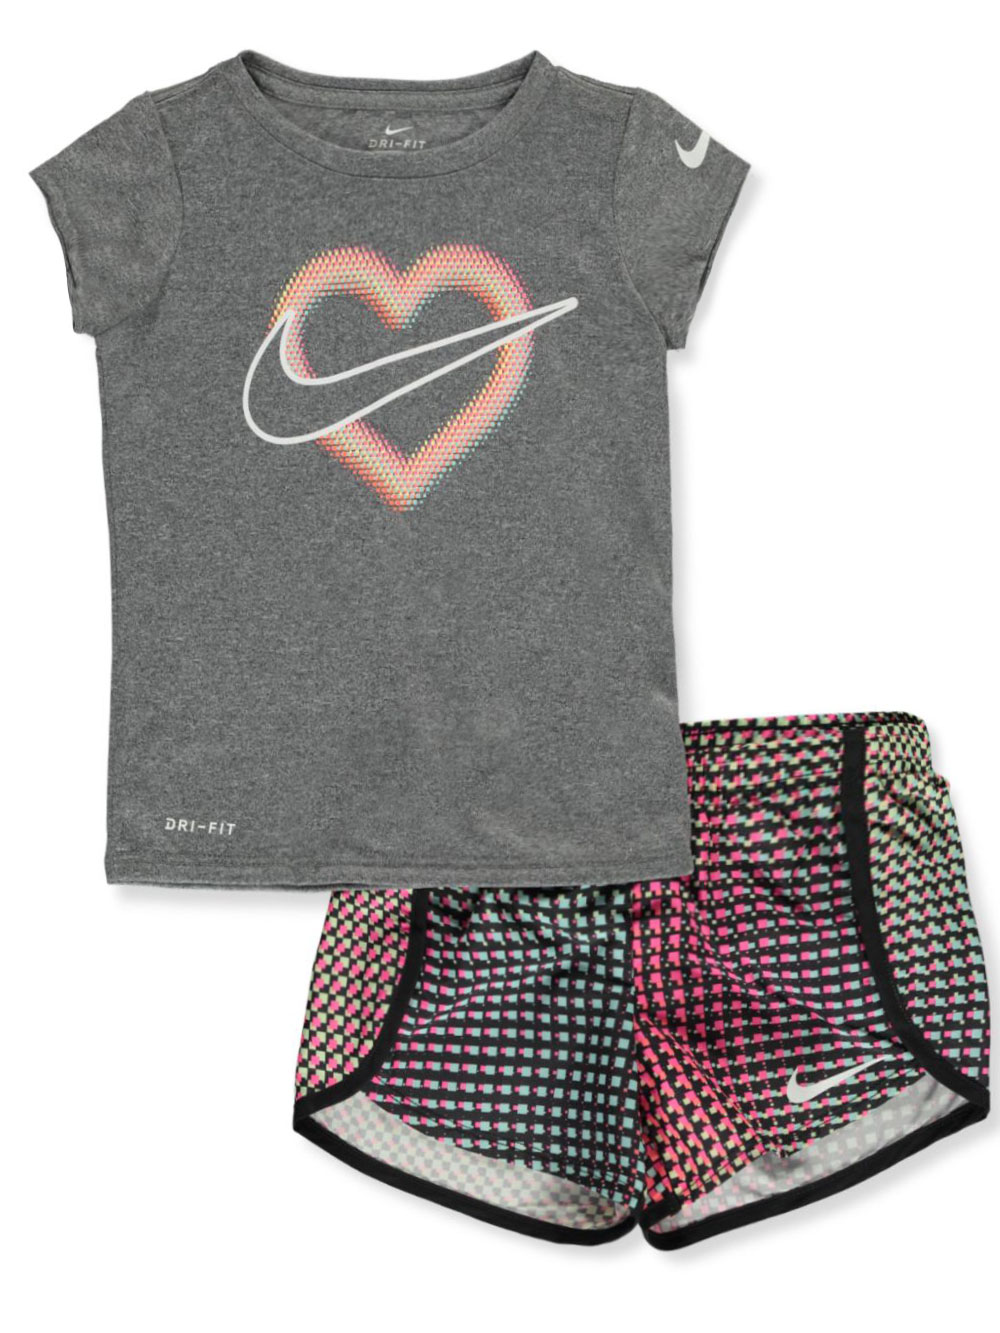 Girls' 2-Piece Shorts Set Outfit